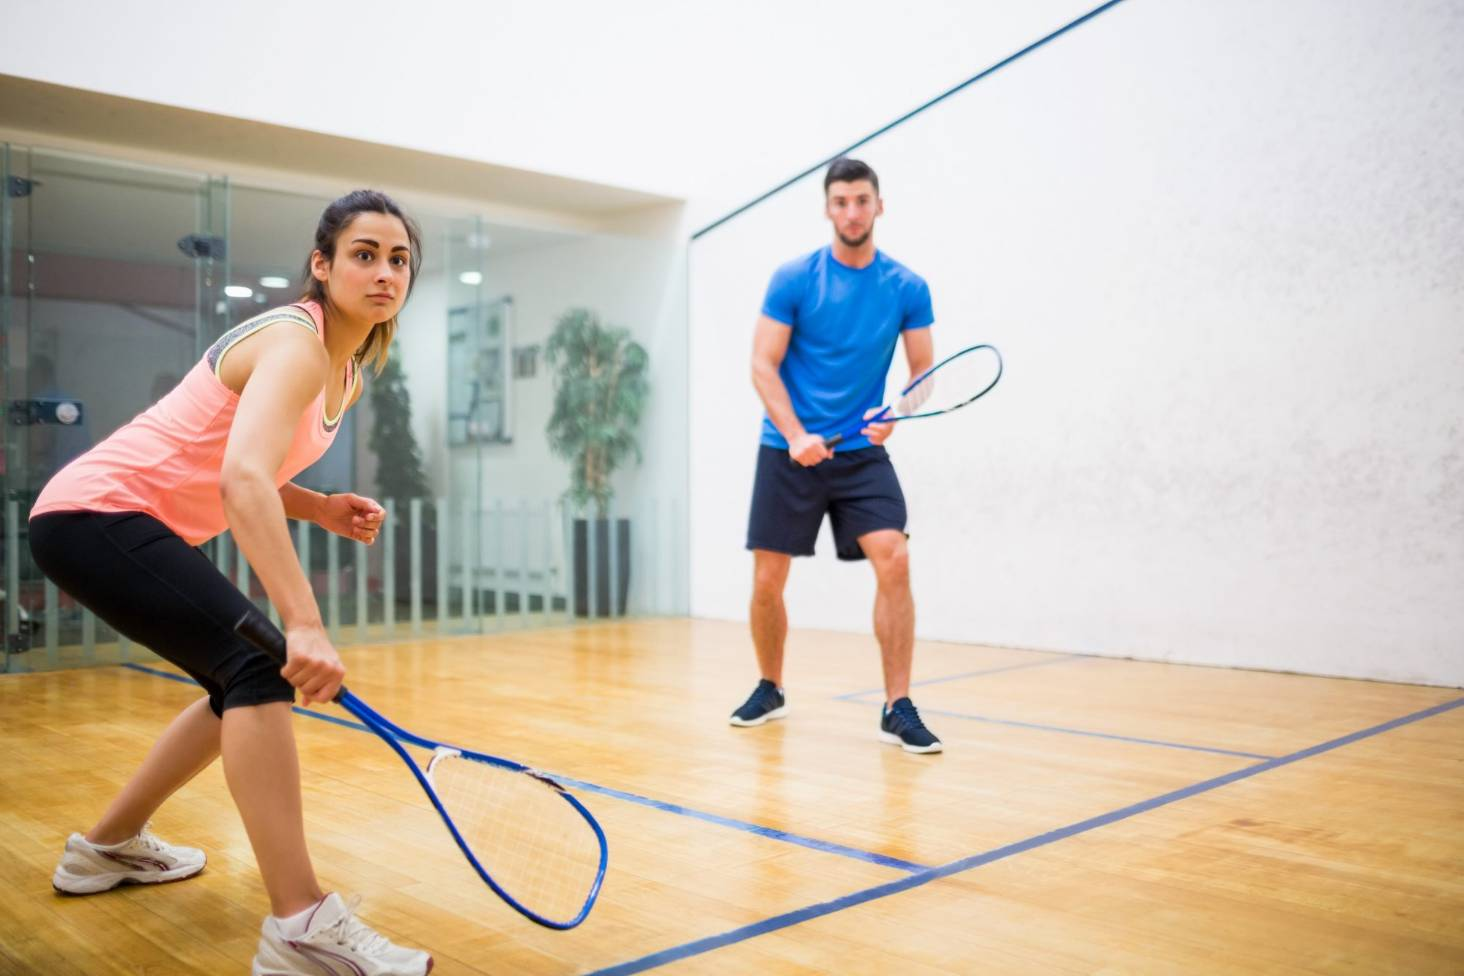 how many calories does squash burn